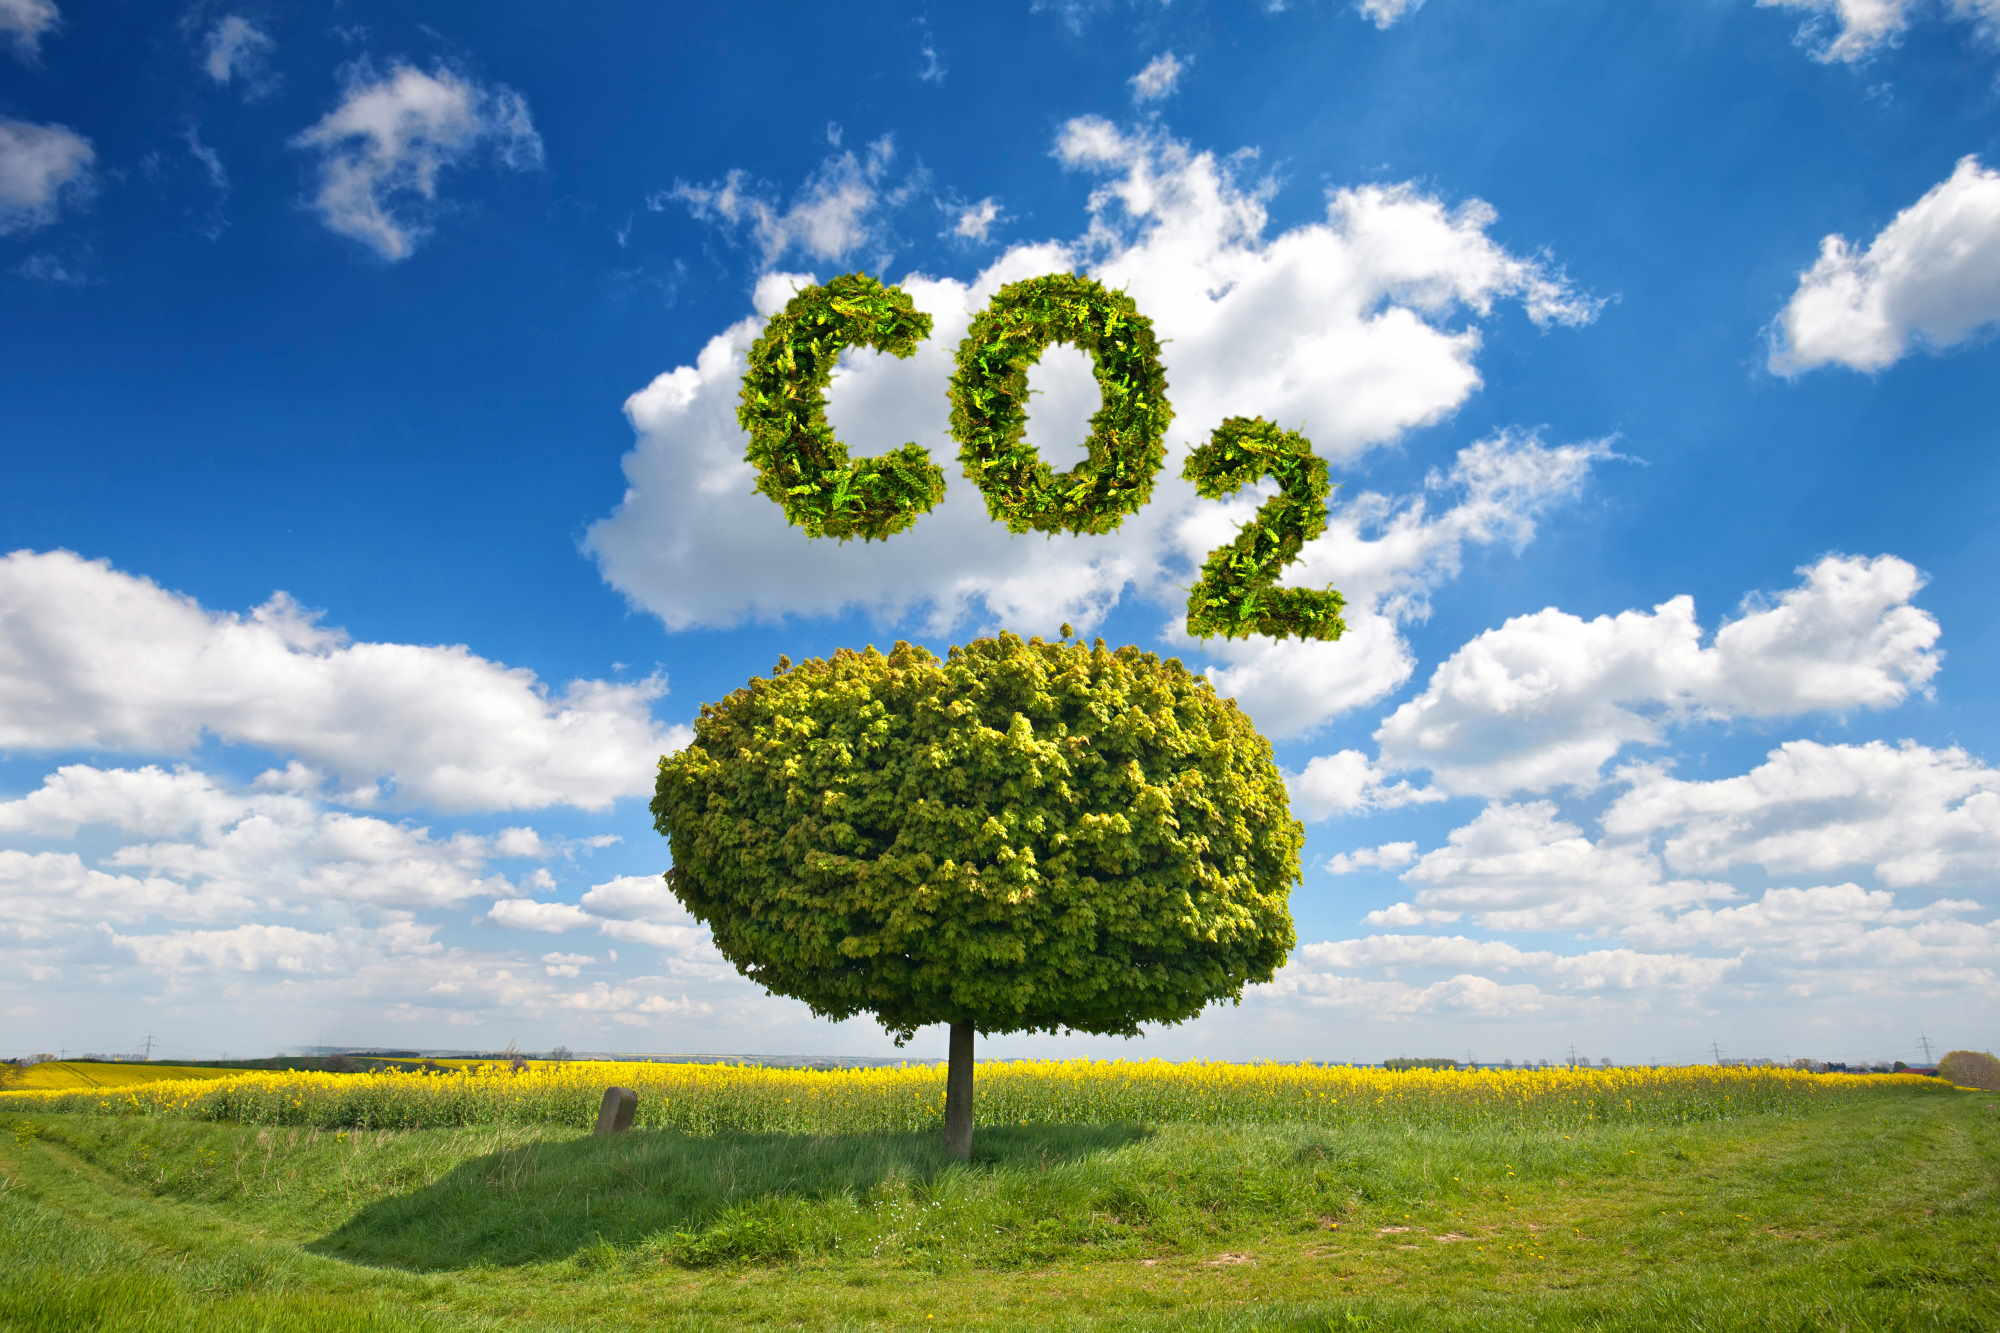 Spain is committed to reducing CO2 emissions